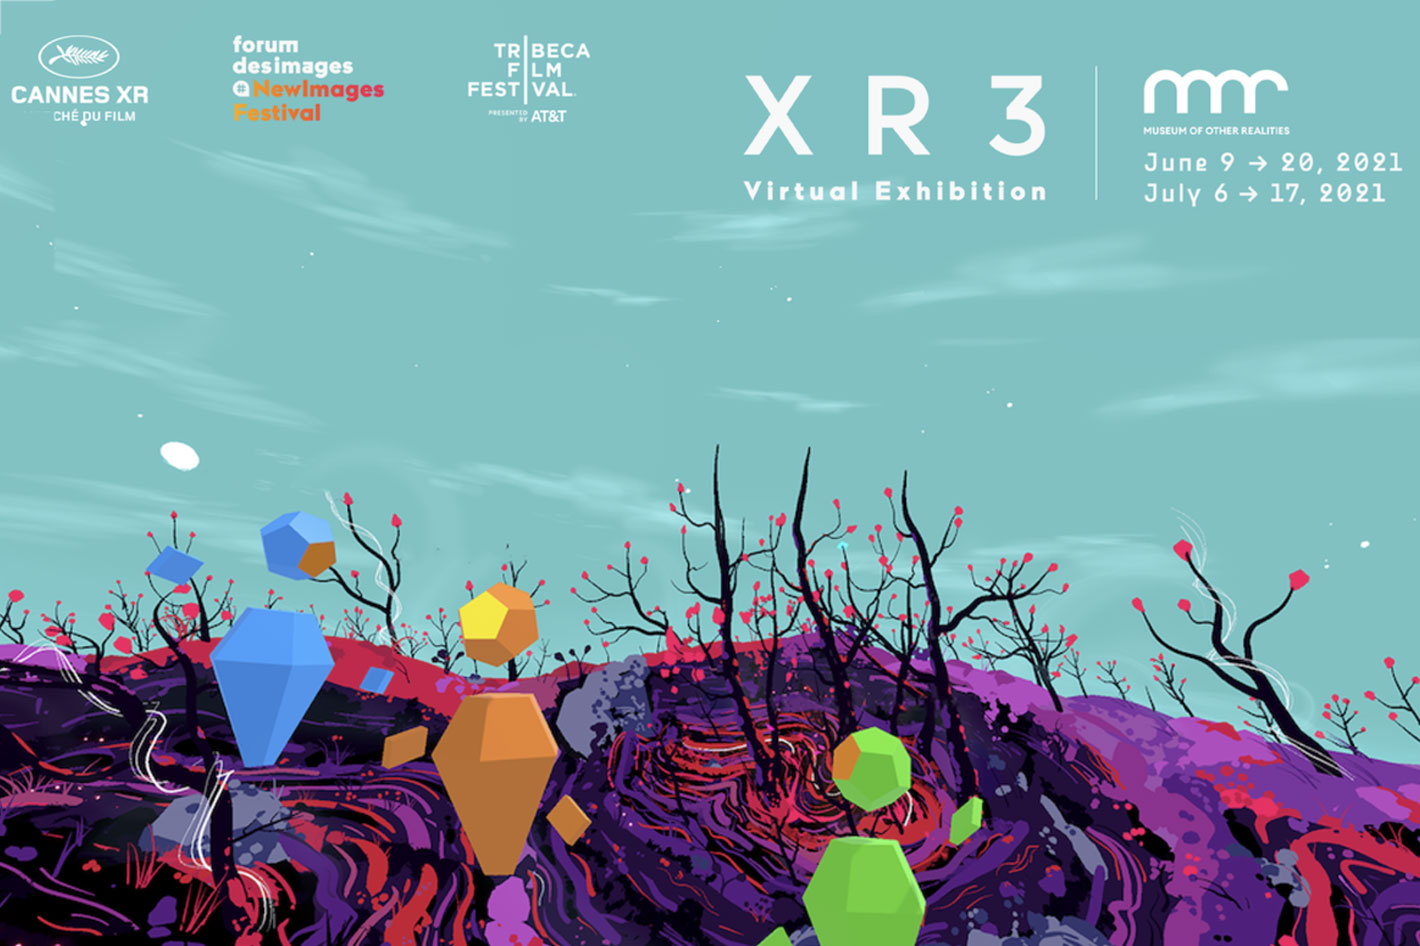 Cannes XR, Tribeca and NewImages festivals open at MOR